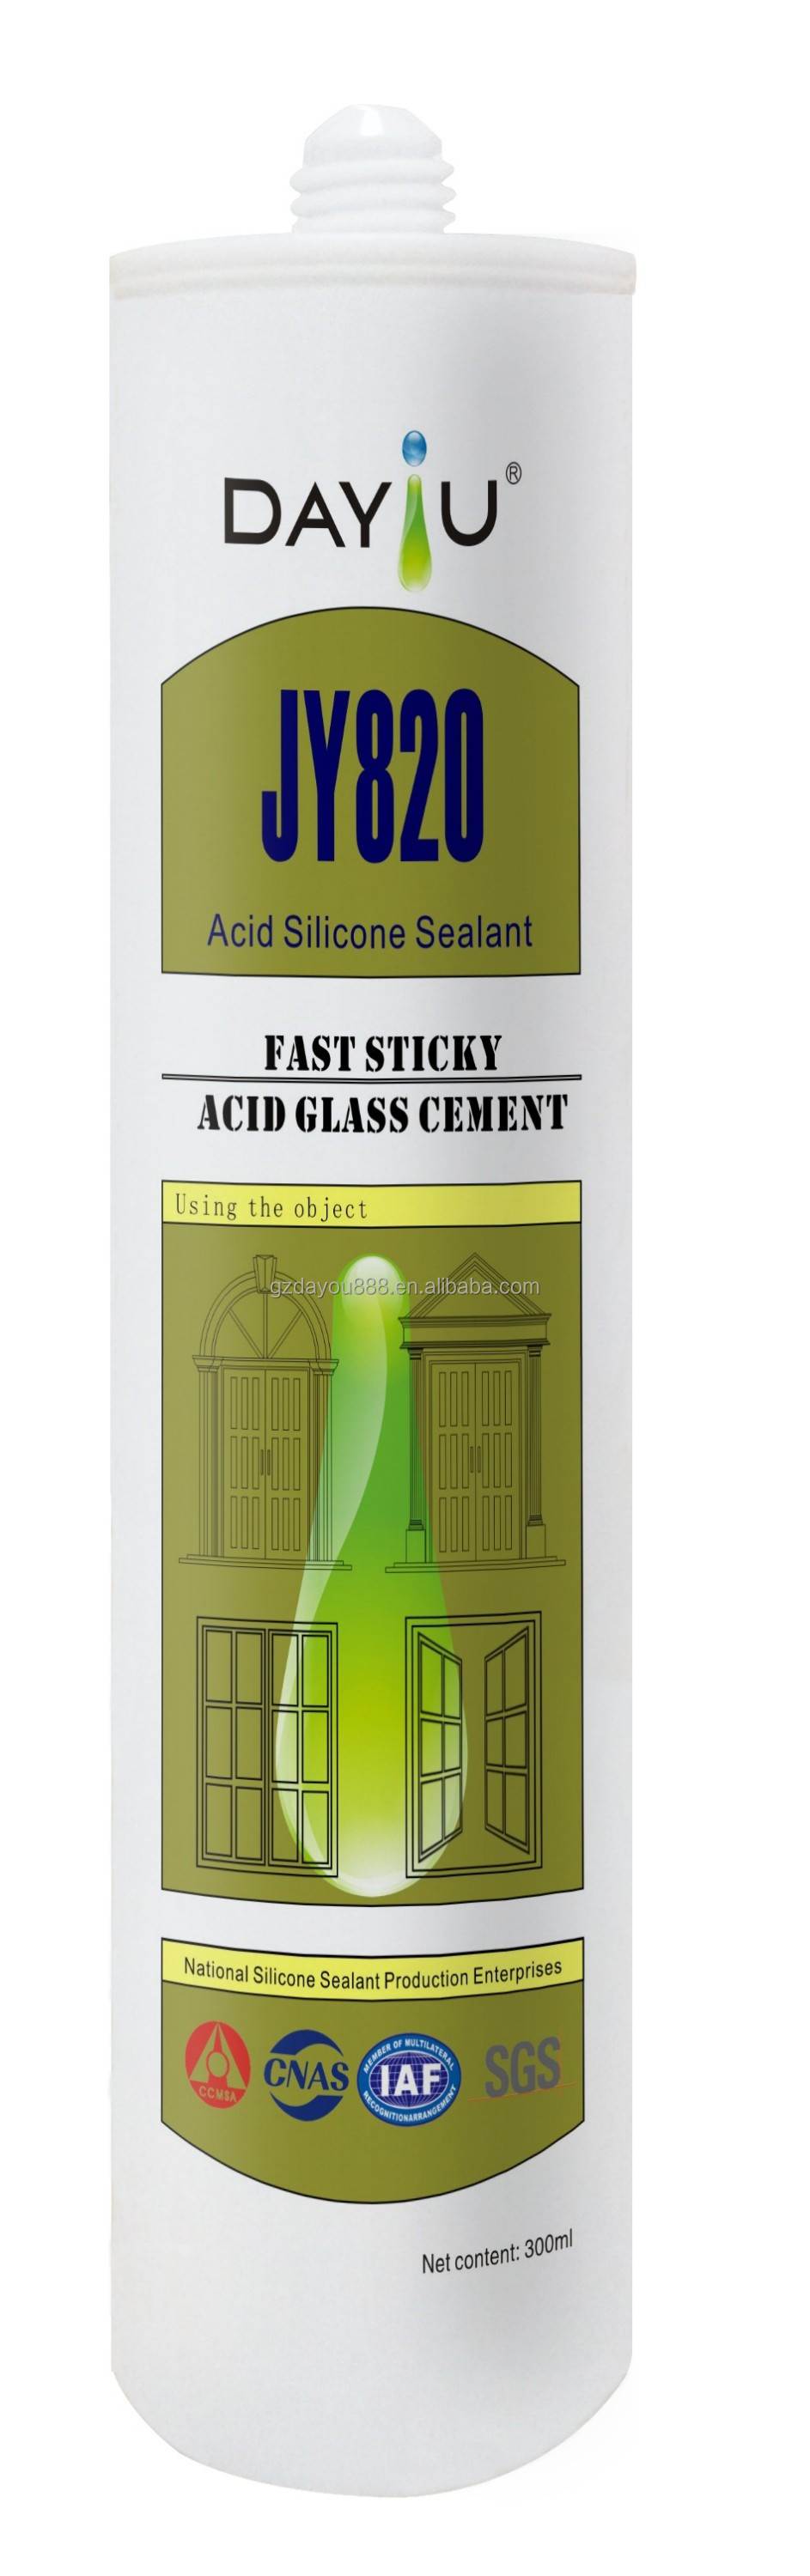 acrylic sealant is electrical insulation silicone sealant